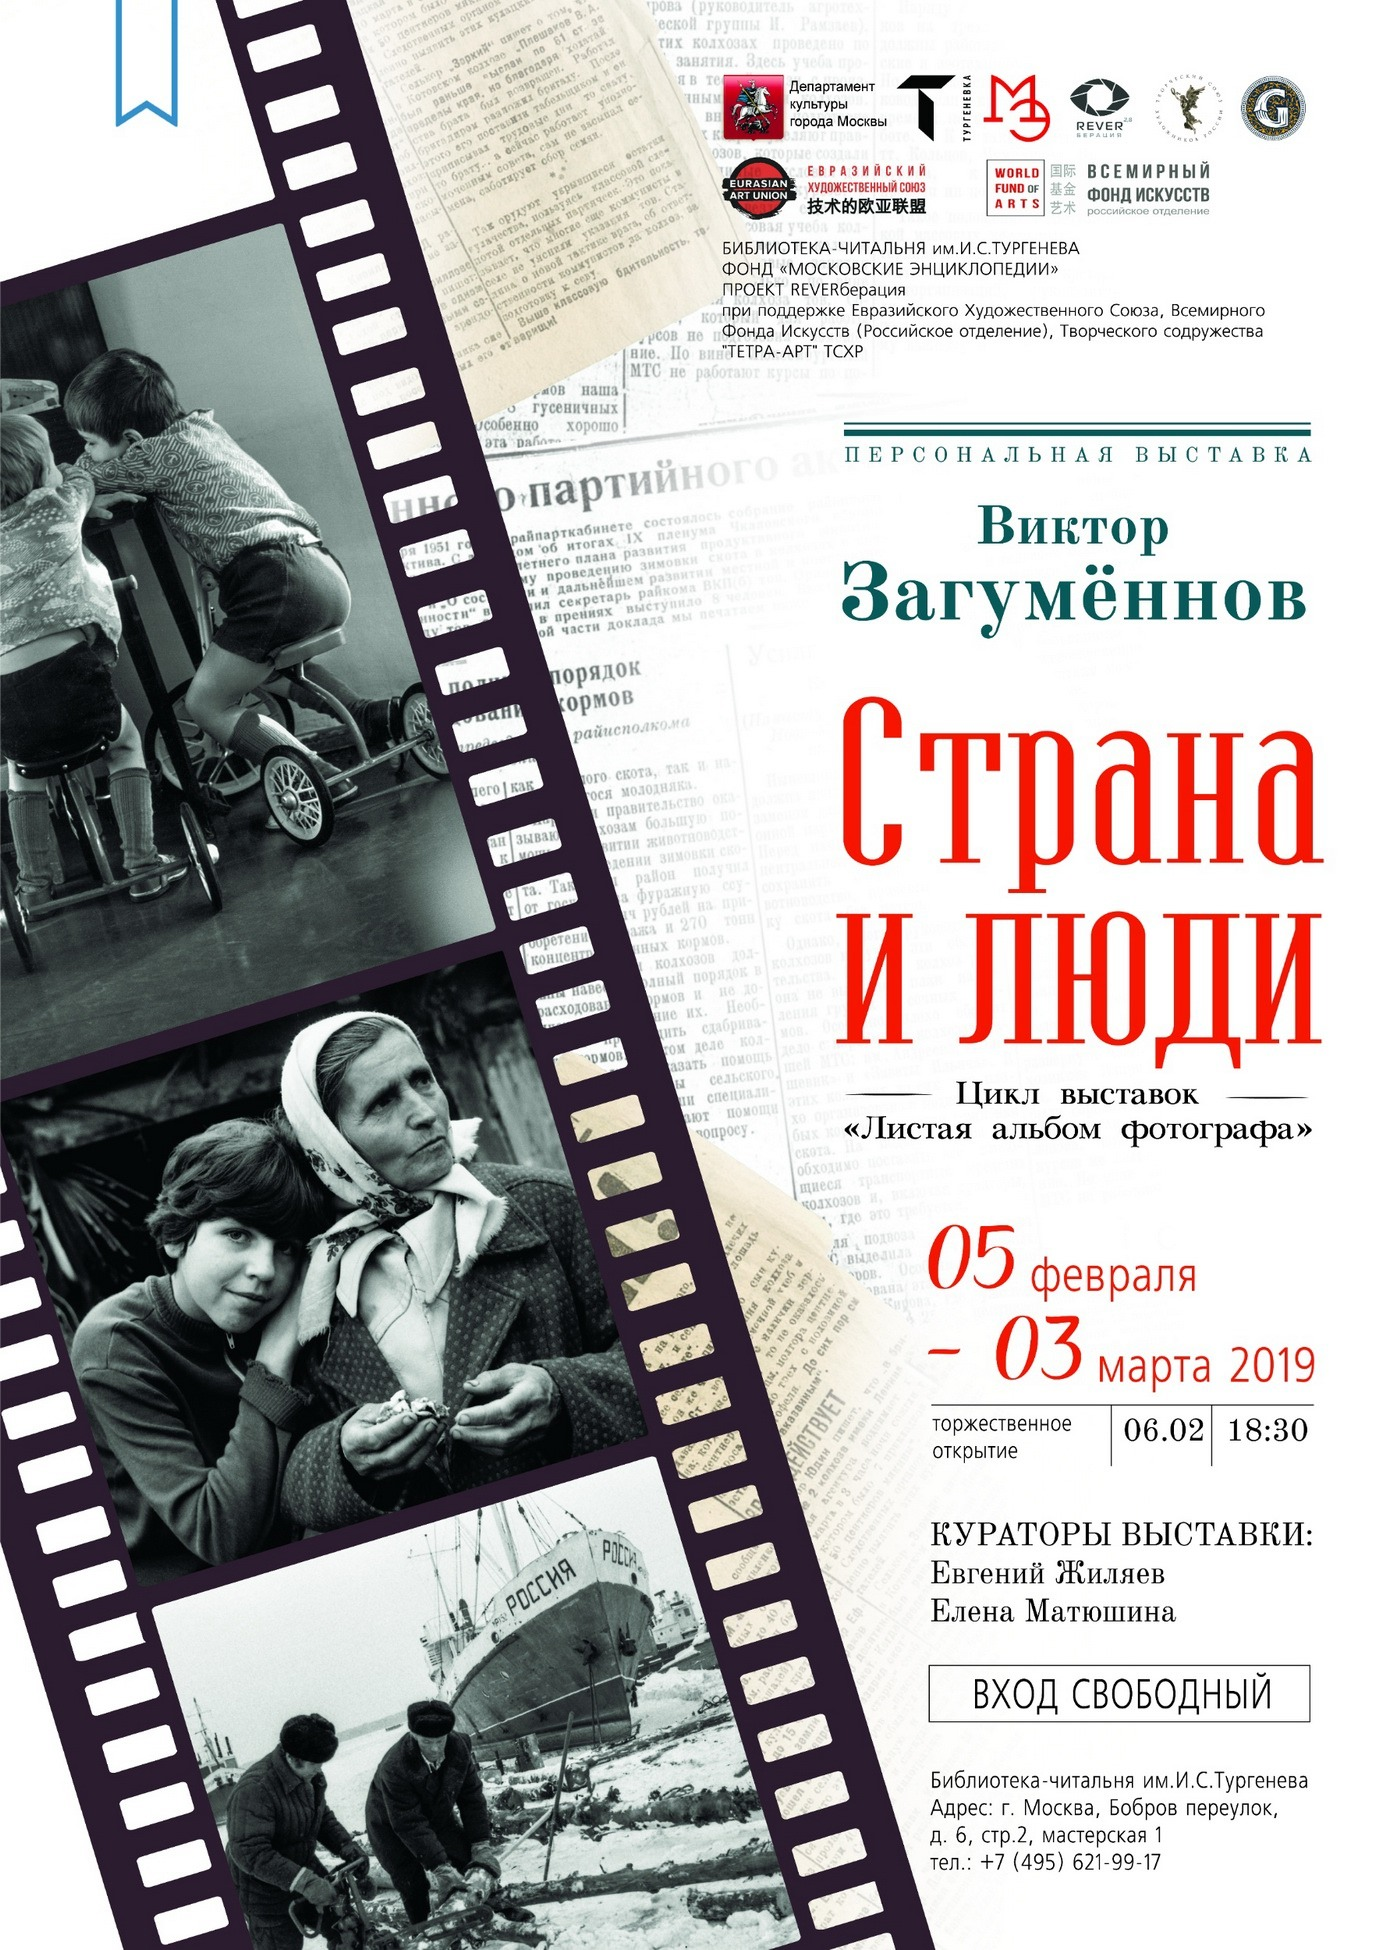 """Country and People"". Exhibition of photojournalist Viktor Zagumennova"